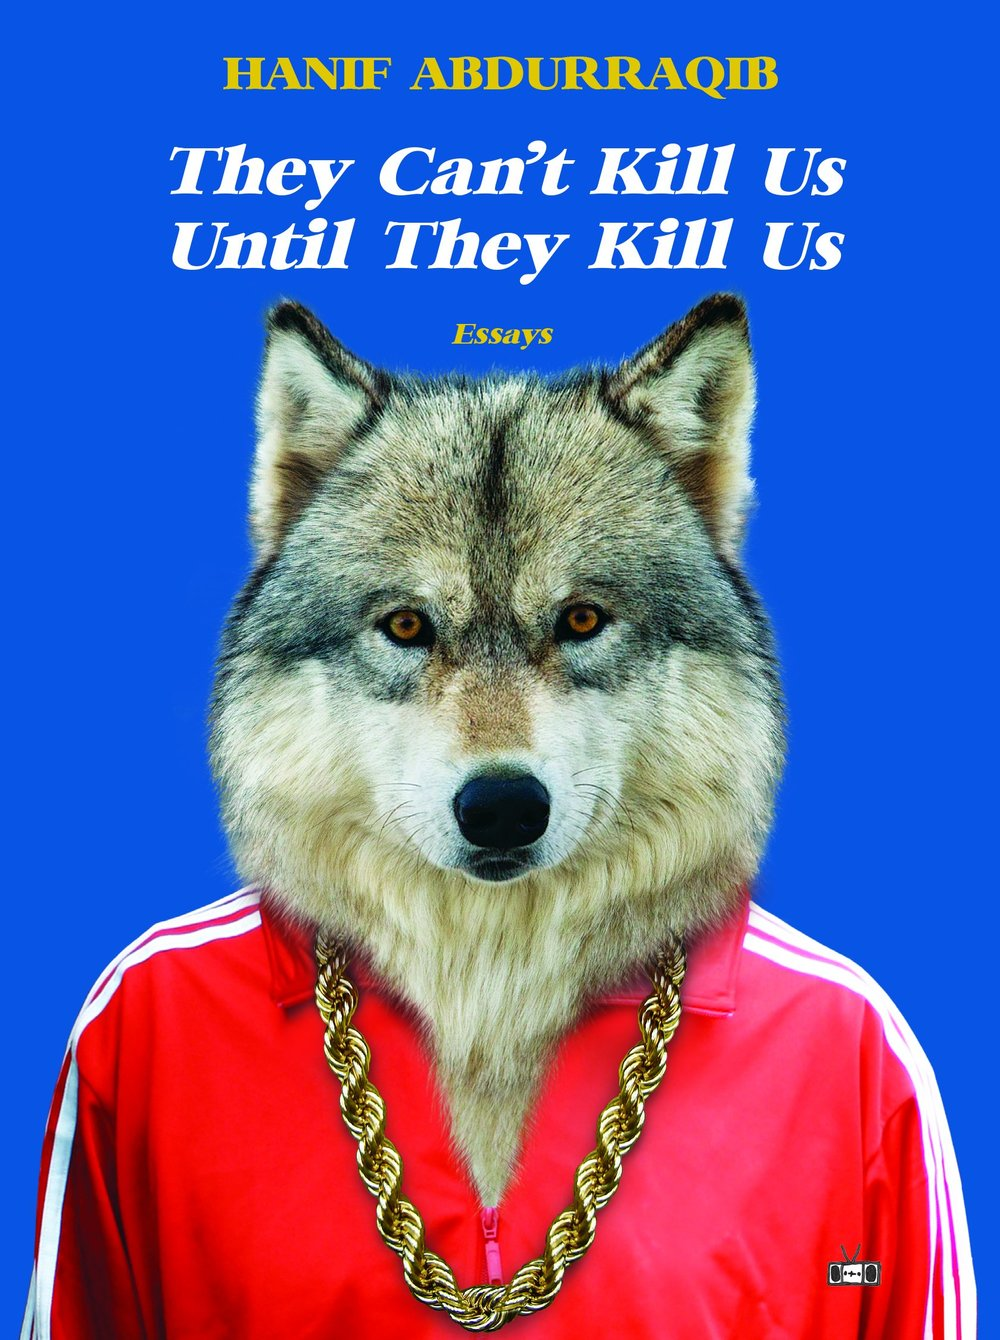 Hanif Abdurraqib's collection of essays, They Can't Kill Us Until They Kill Us, was published in 2017 by Two Dollar Radio.